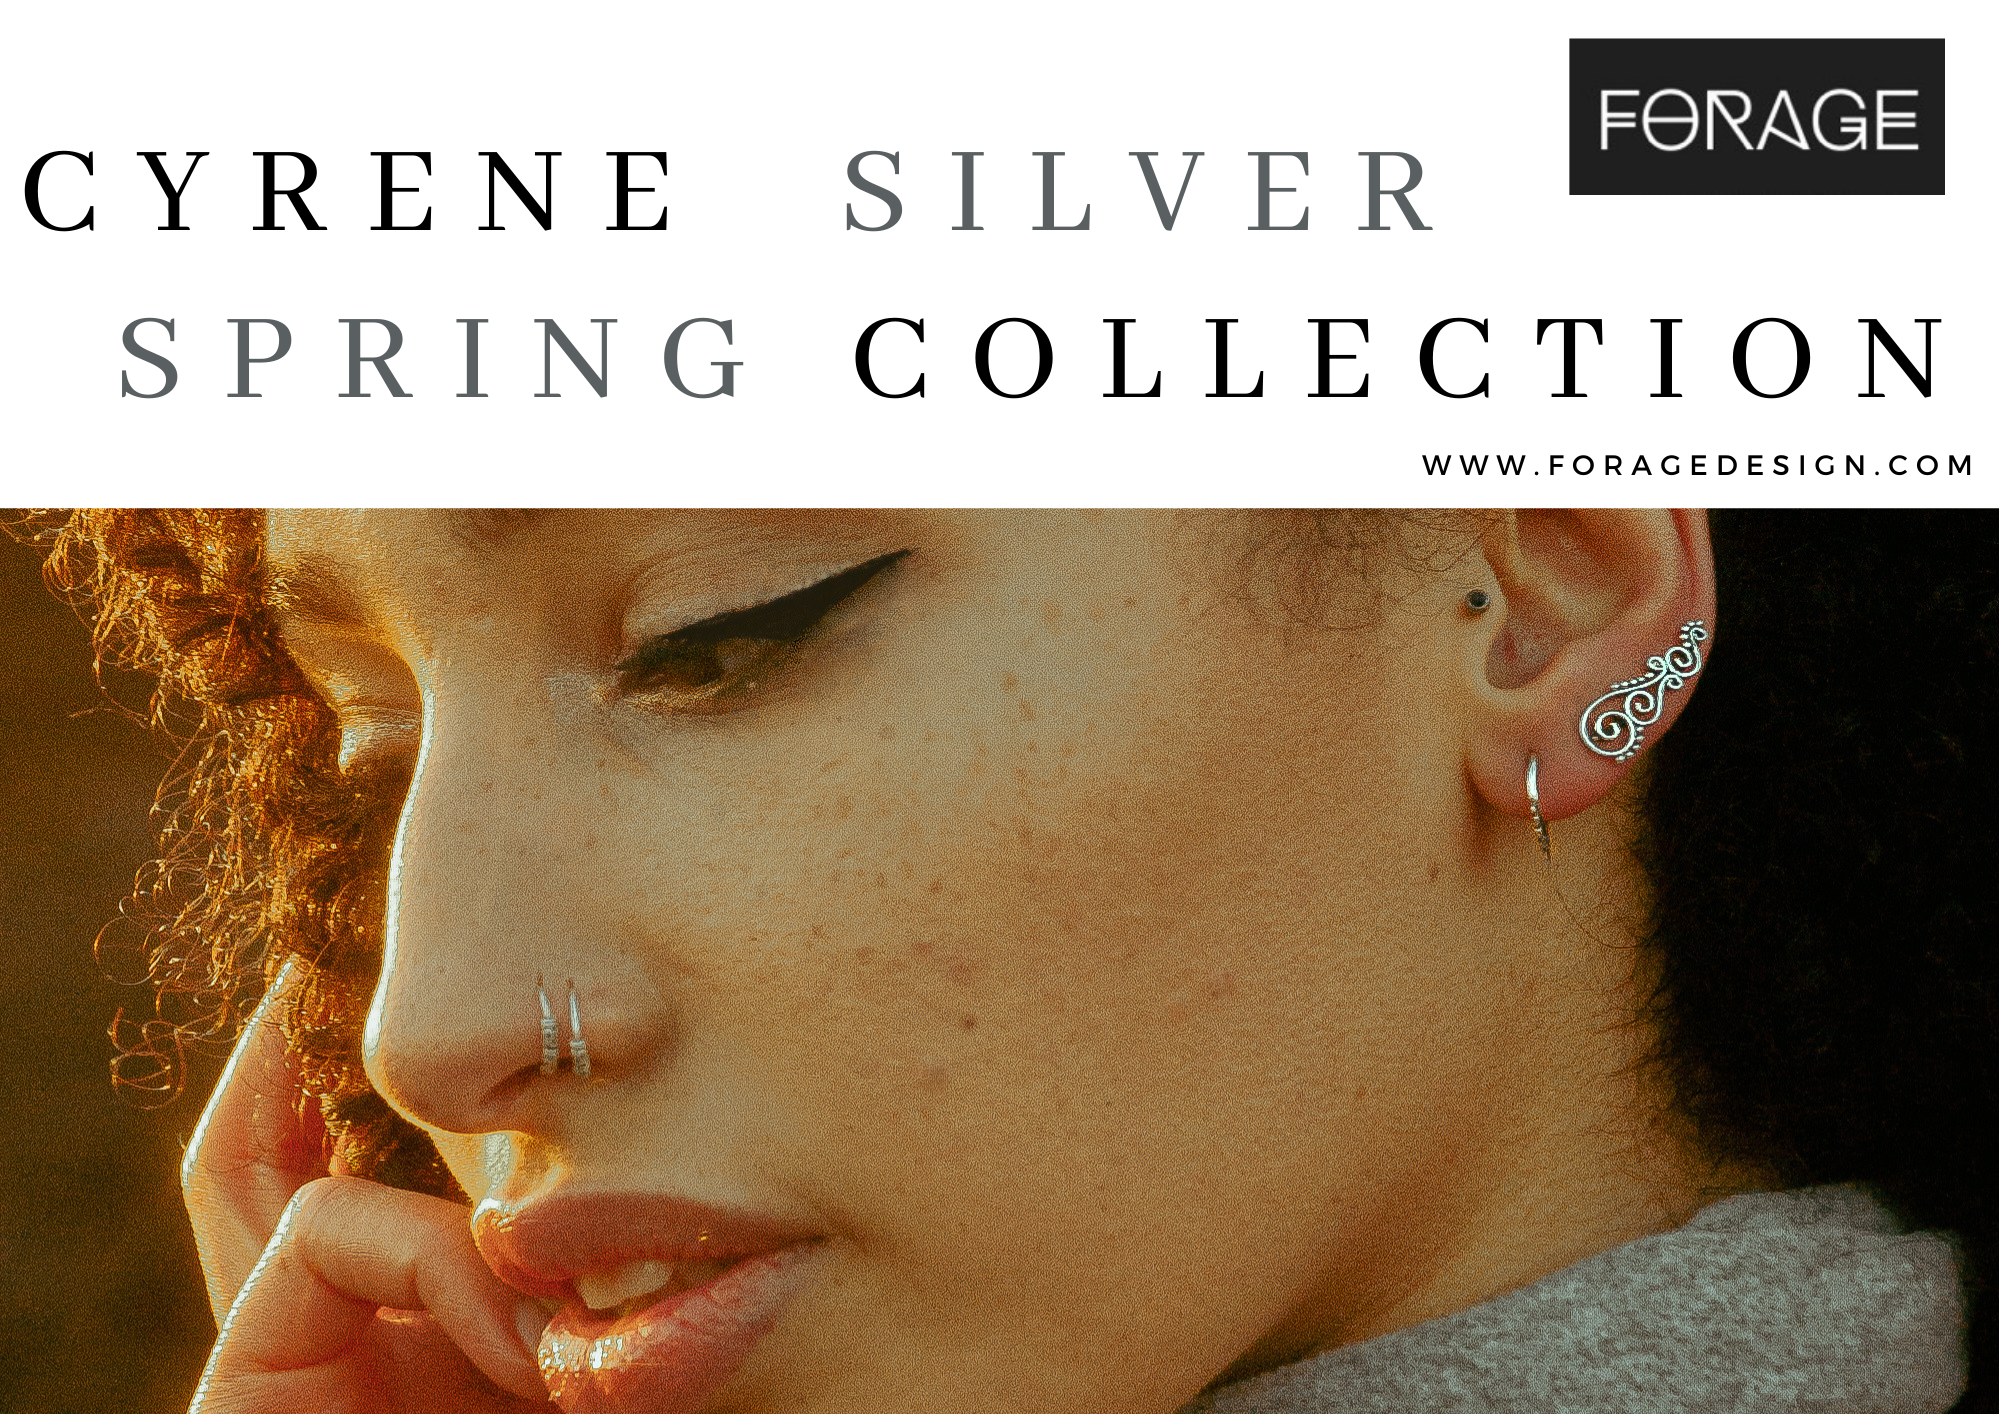 Cyrene silver collection look book by Forage Design